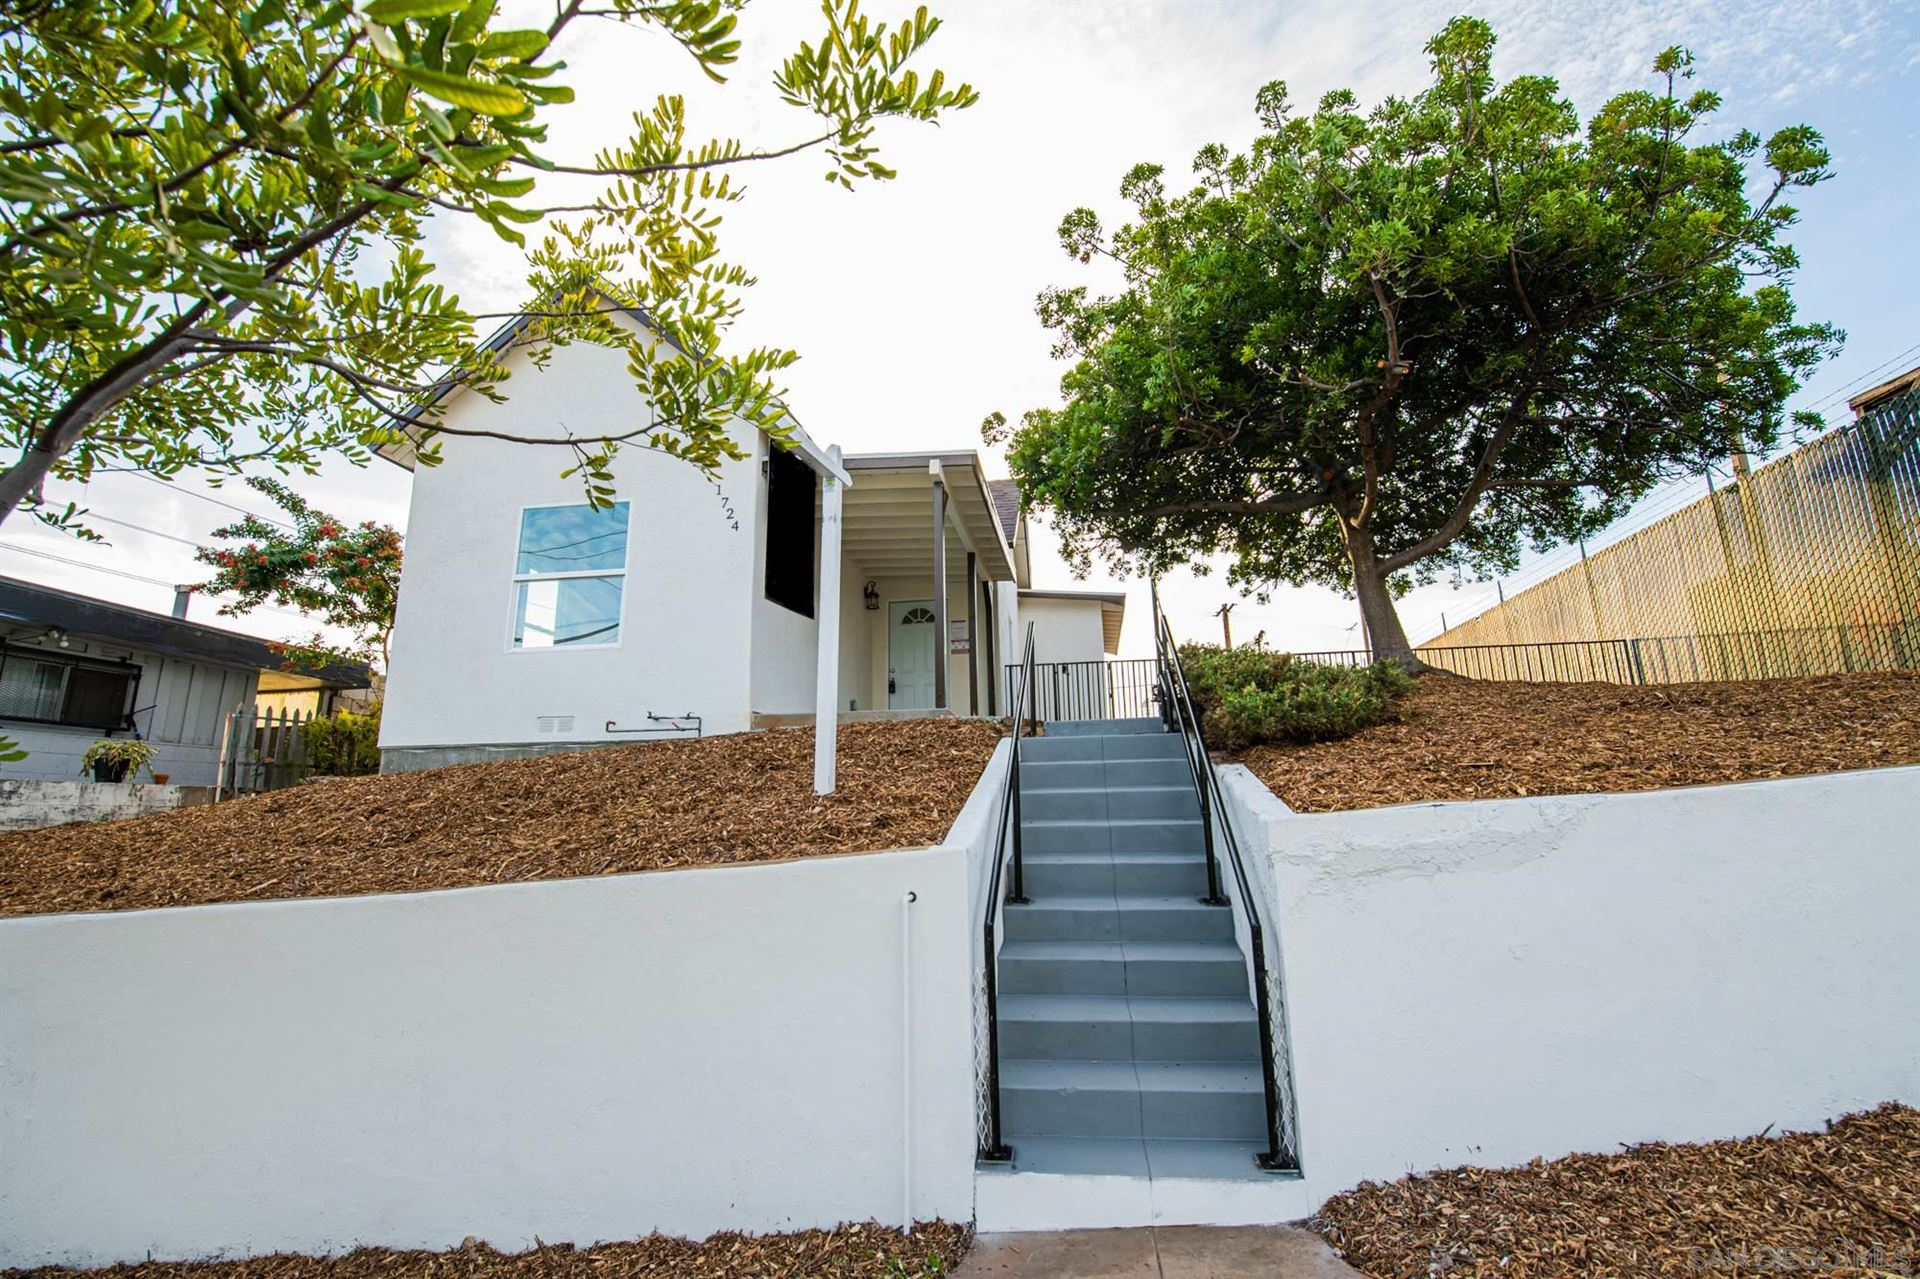 Photo of 1724-26 Hoover Ave, National City, CA 91950 (MLS # 200053637)